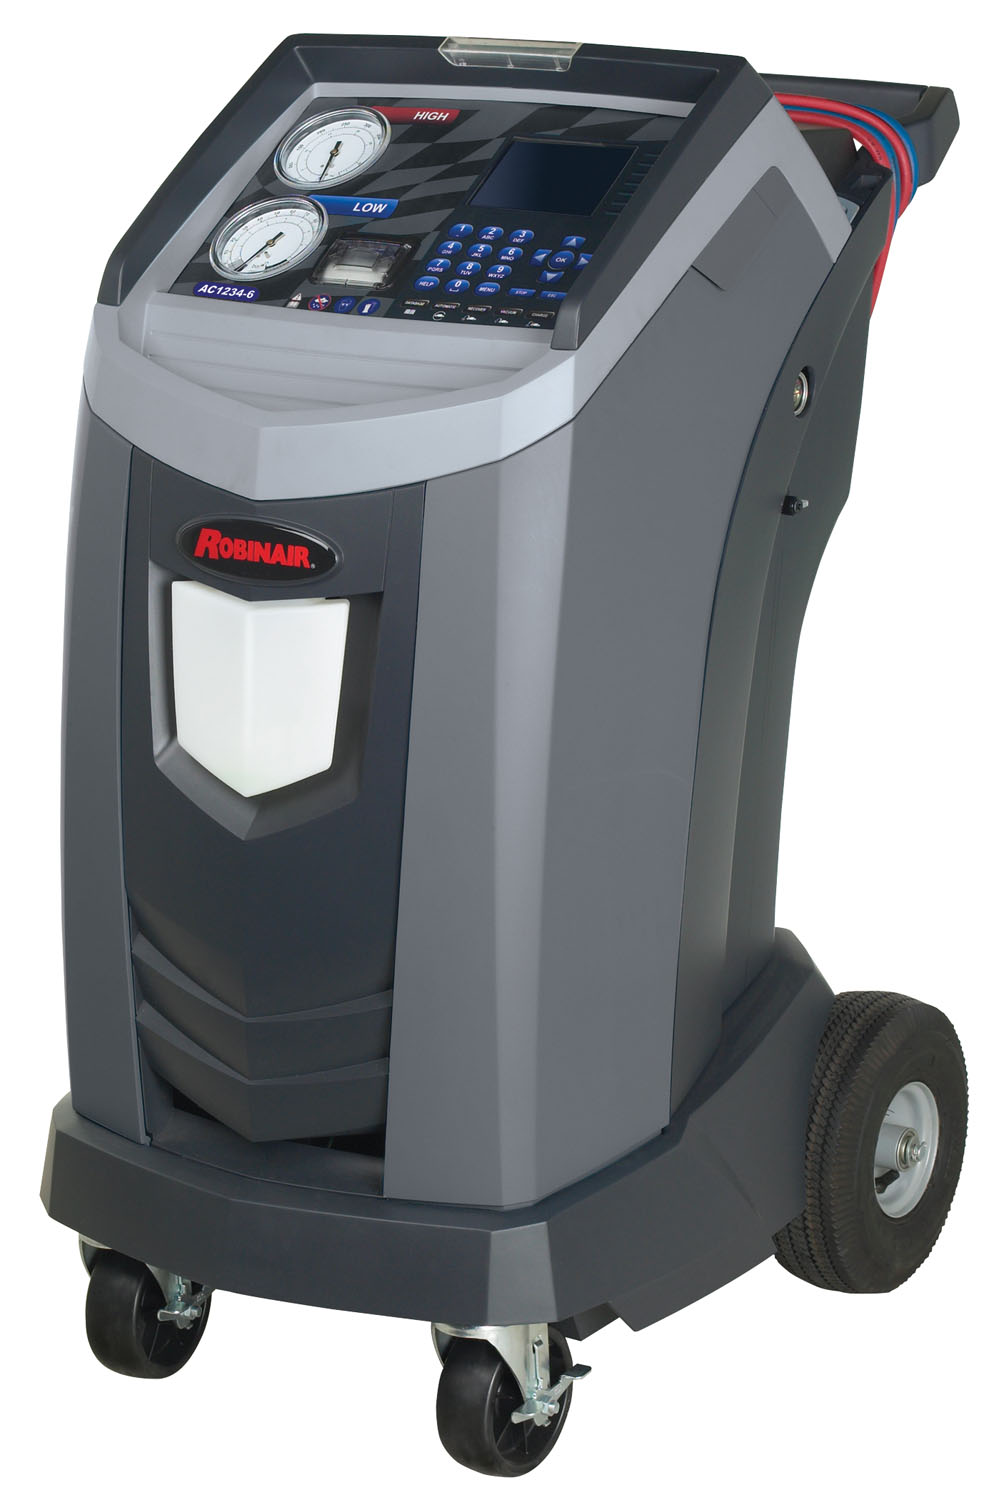 Robinair 1234YF Recover, Recycle, and Recharge Machine